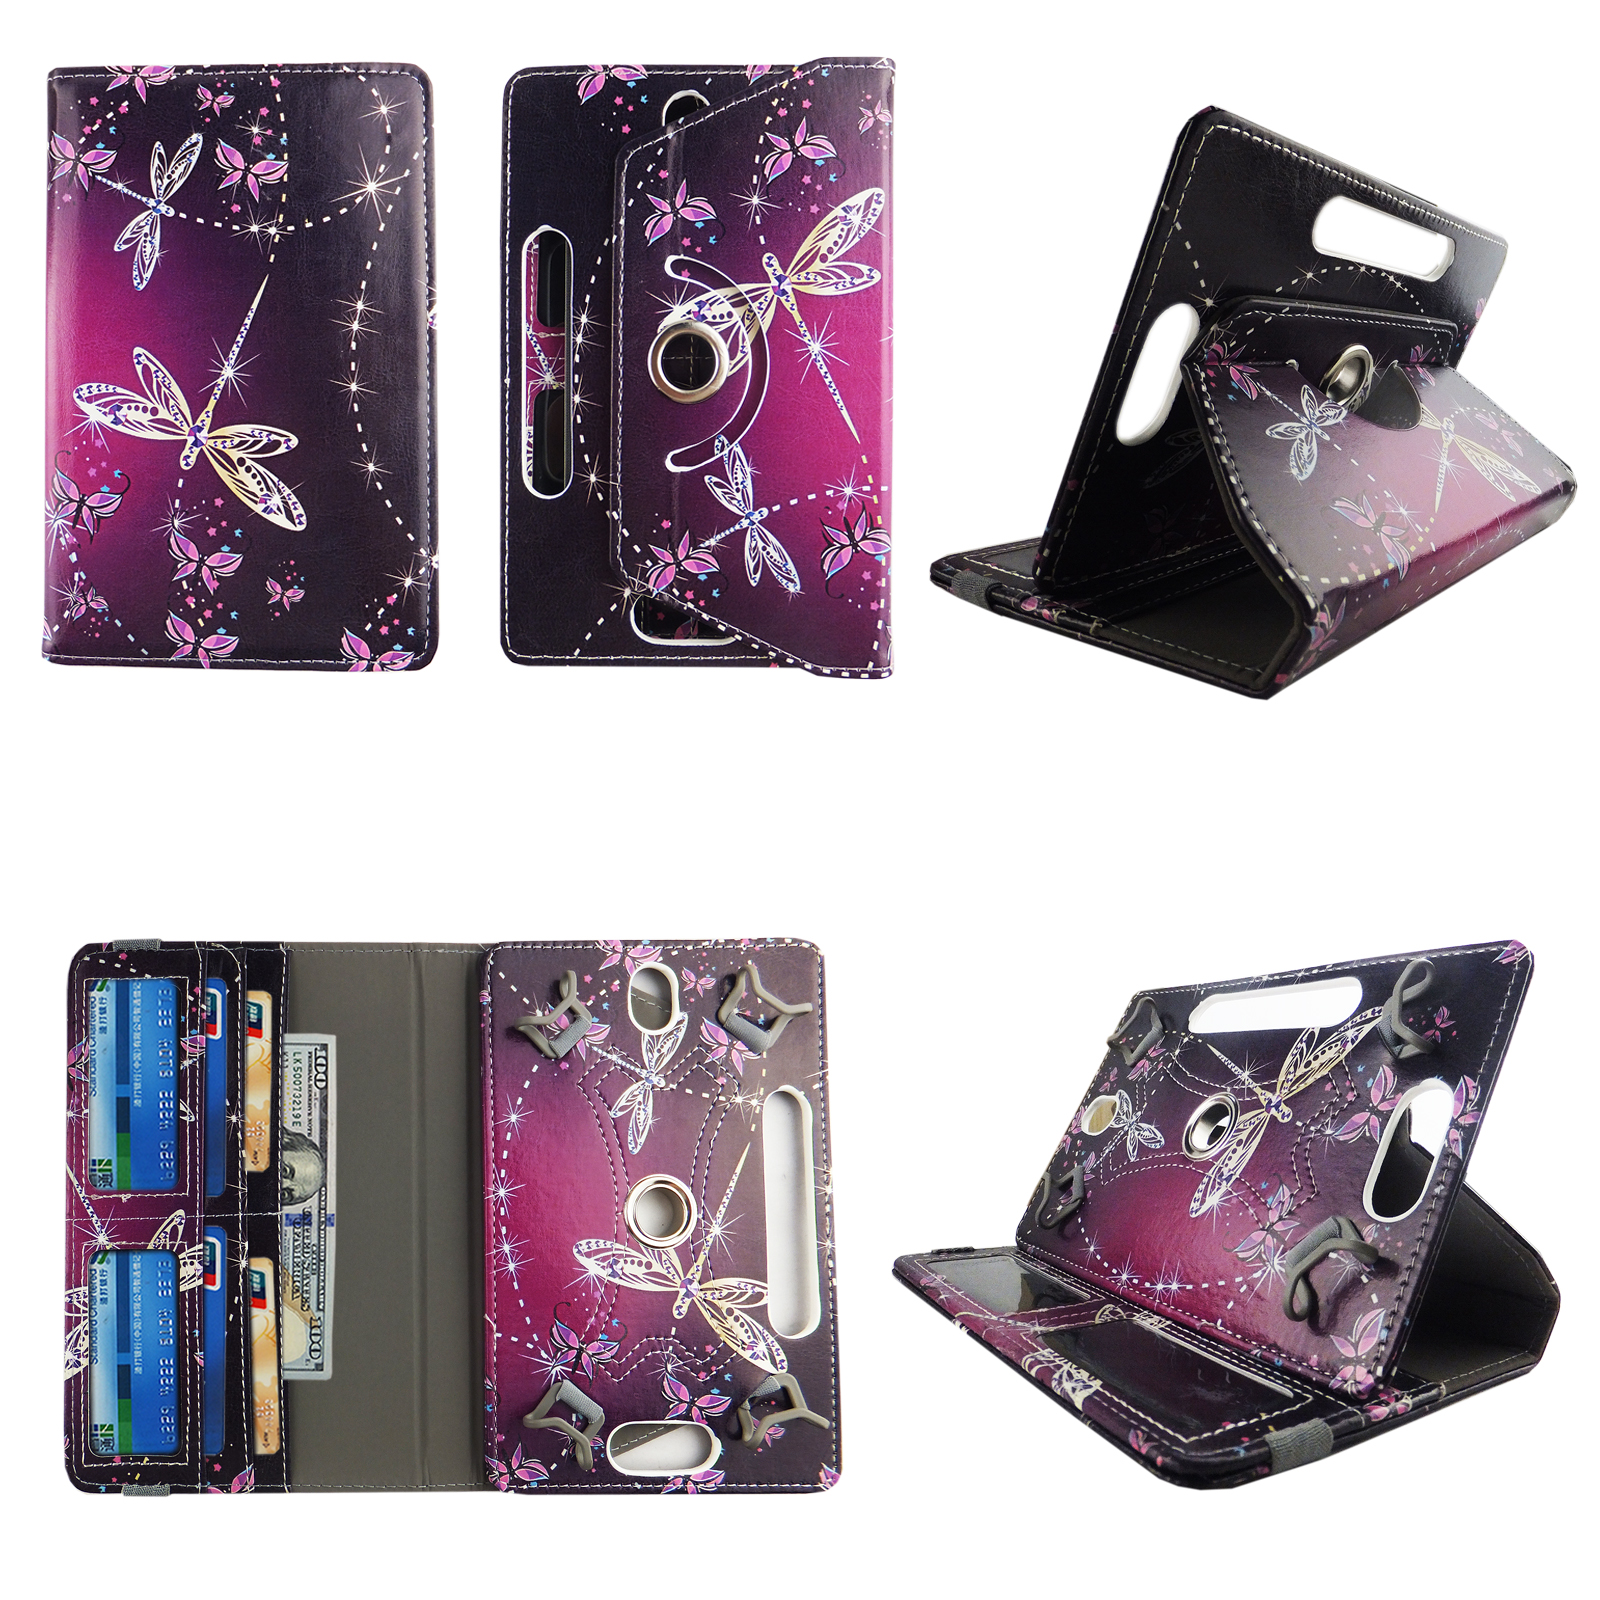 "Sparkly Butterfly tablet case 10 inch for LG G Pad 10.1 10"" 10inch android tablet cases 360 rotating slim folio stand protector pu leather cover travel e-reader cash slots"